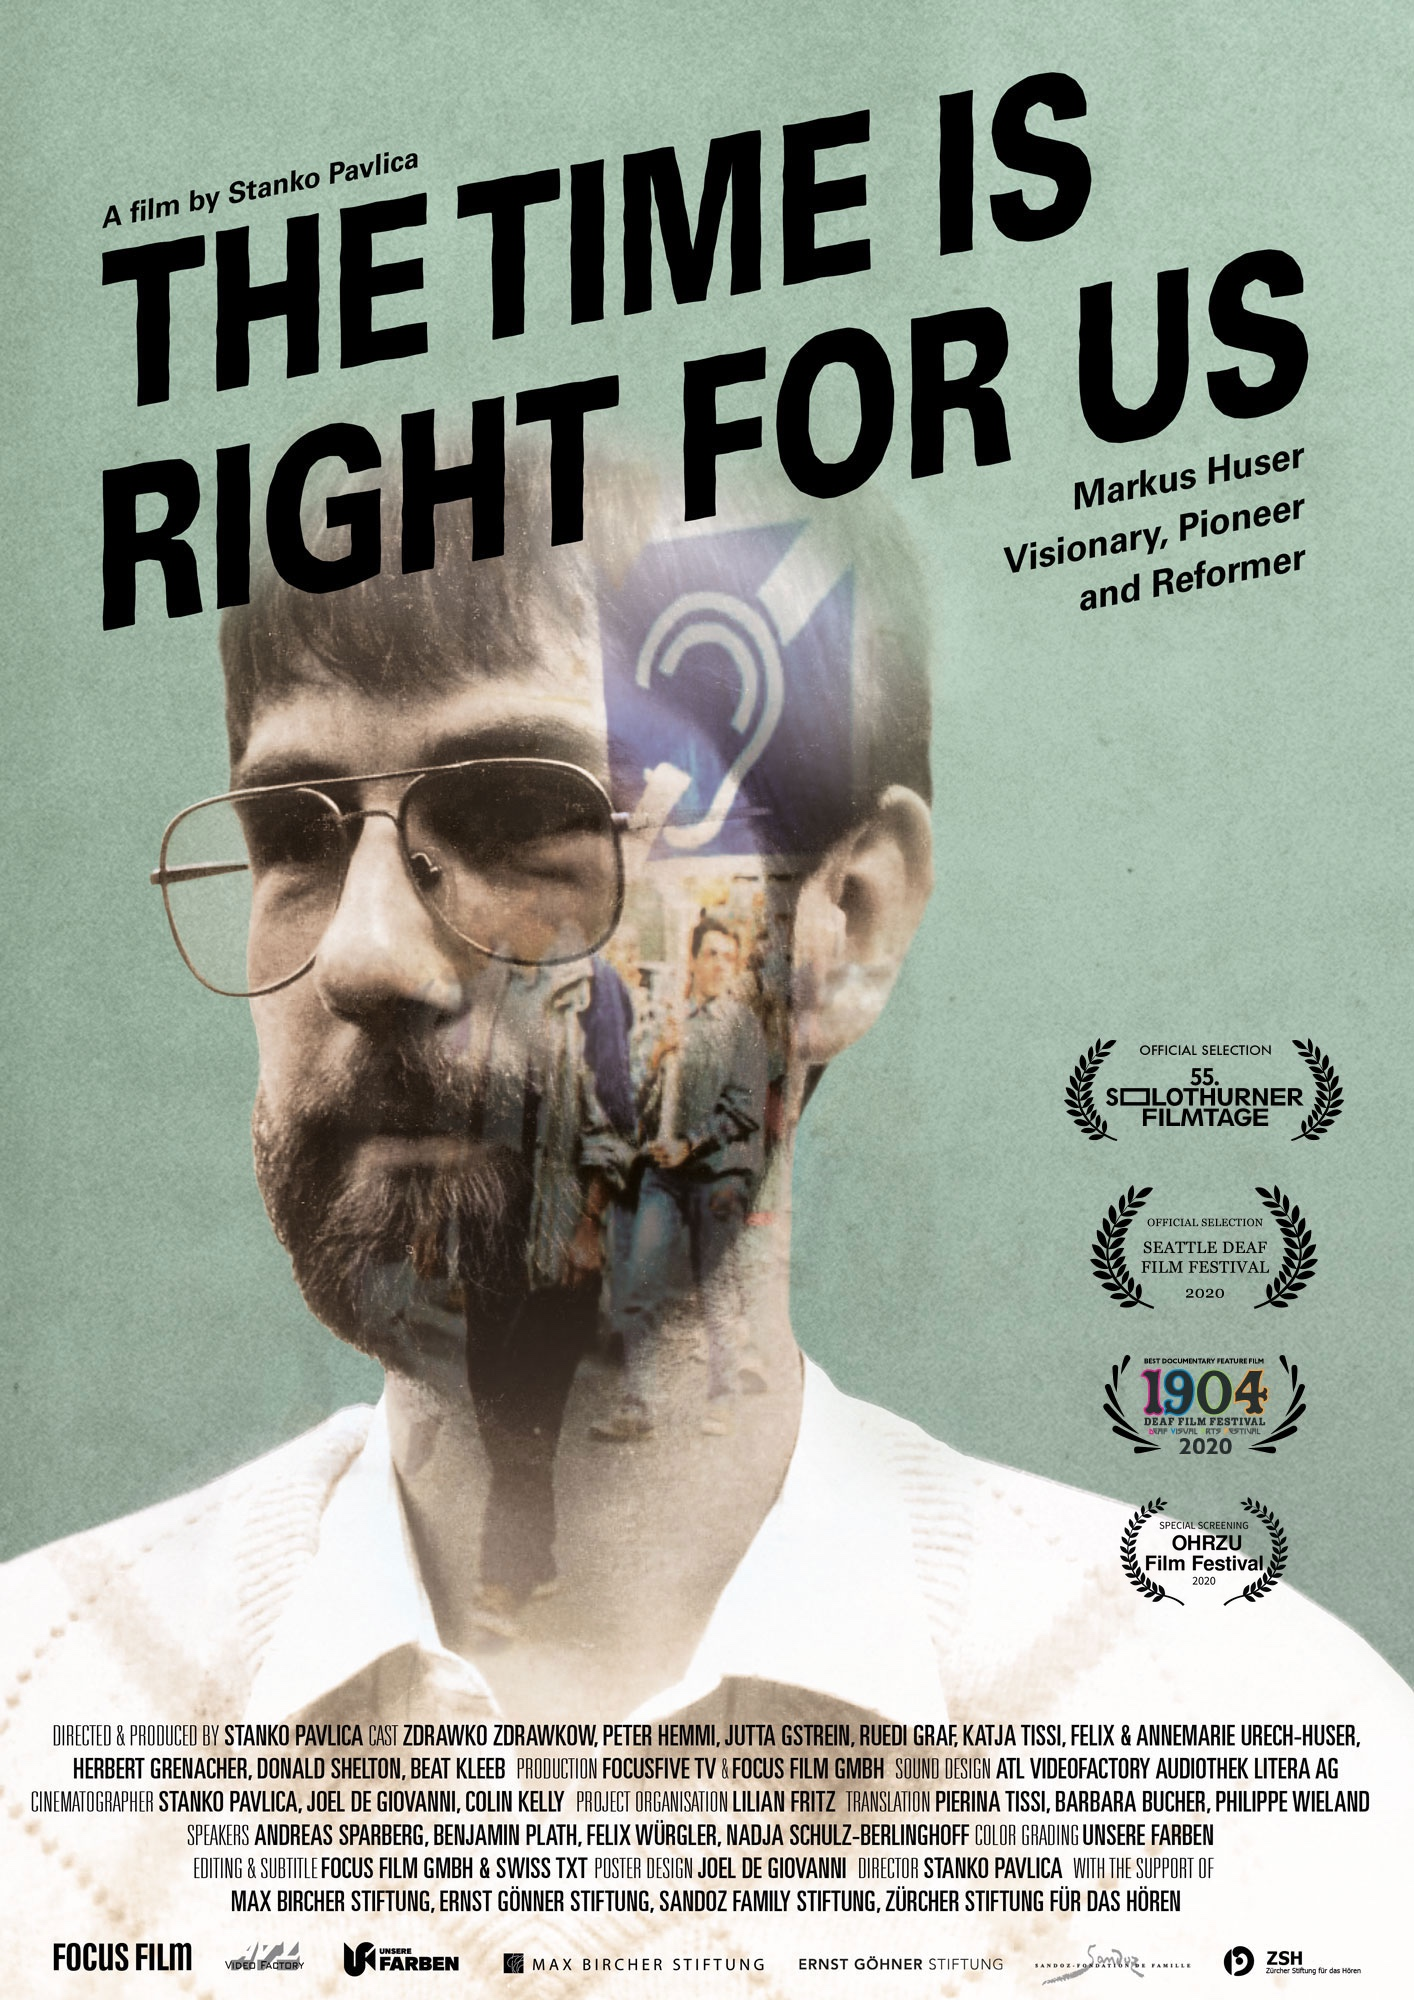 The Time Is Right for Us - Poster (Updat